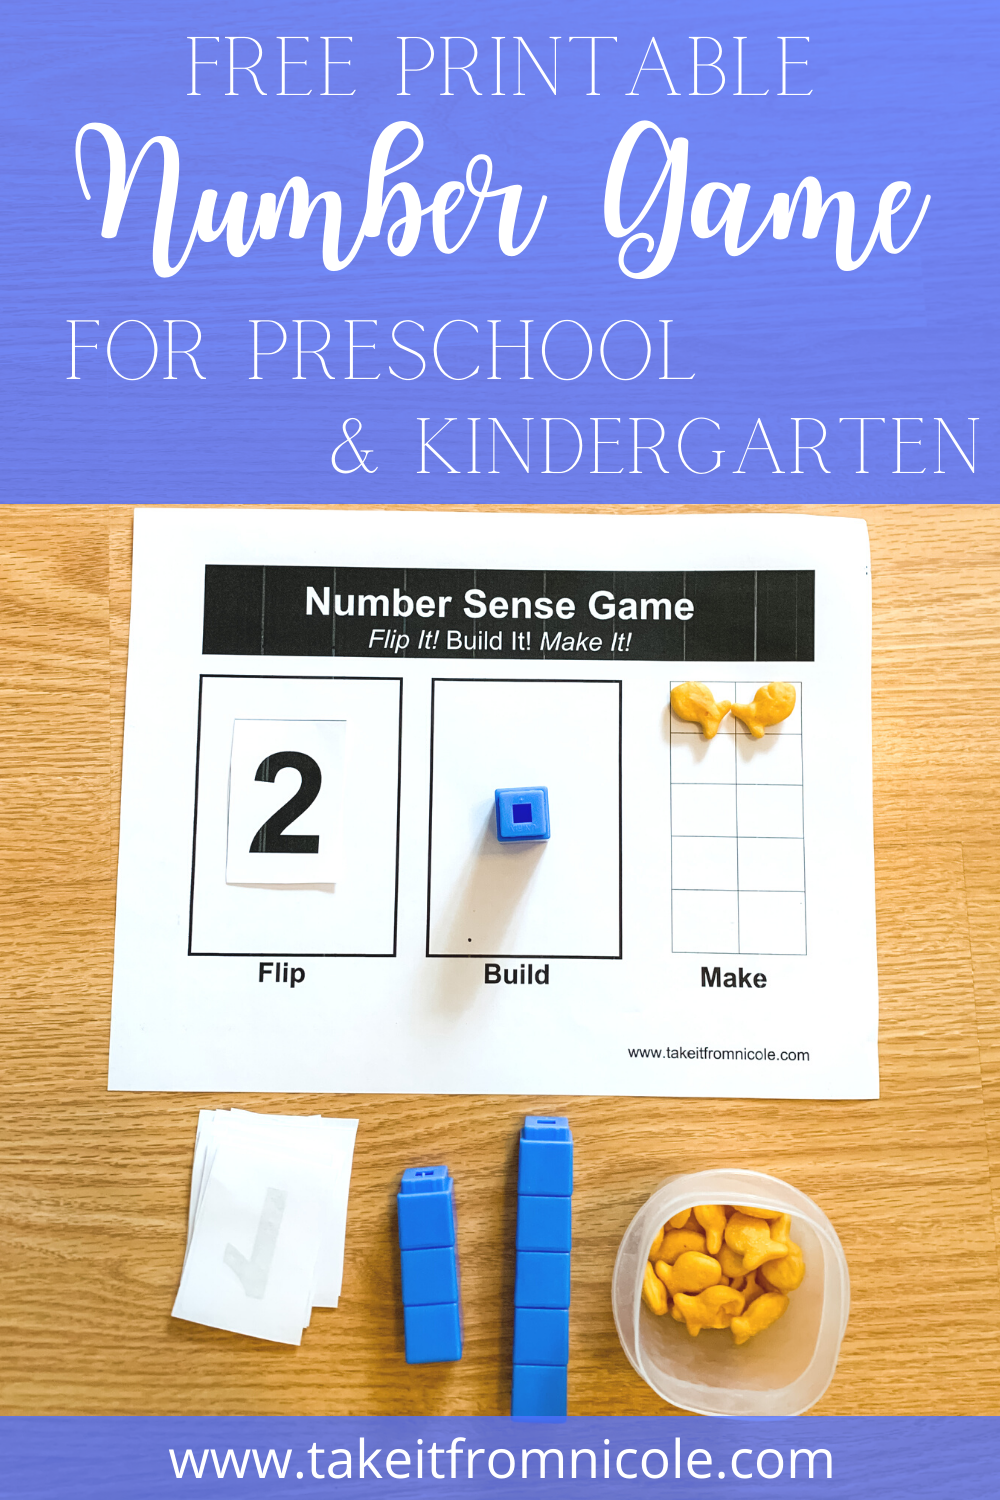 A free printable Number sense game for preschool and kindergarten that teaches number recognition.